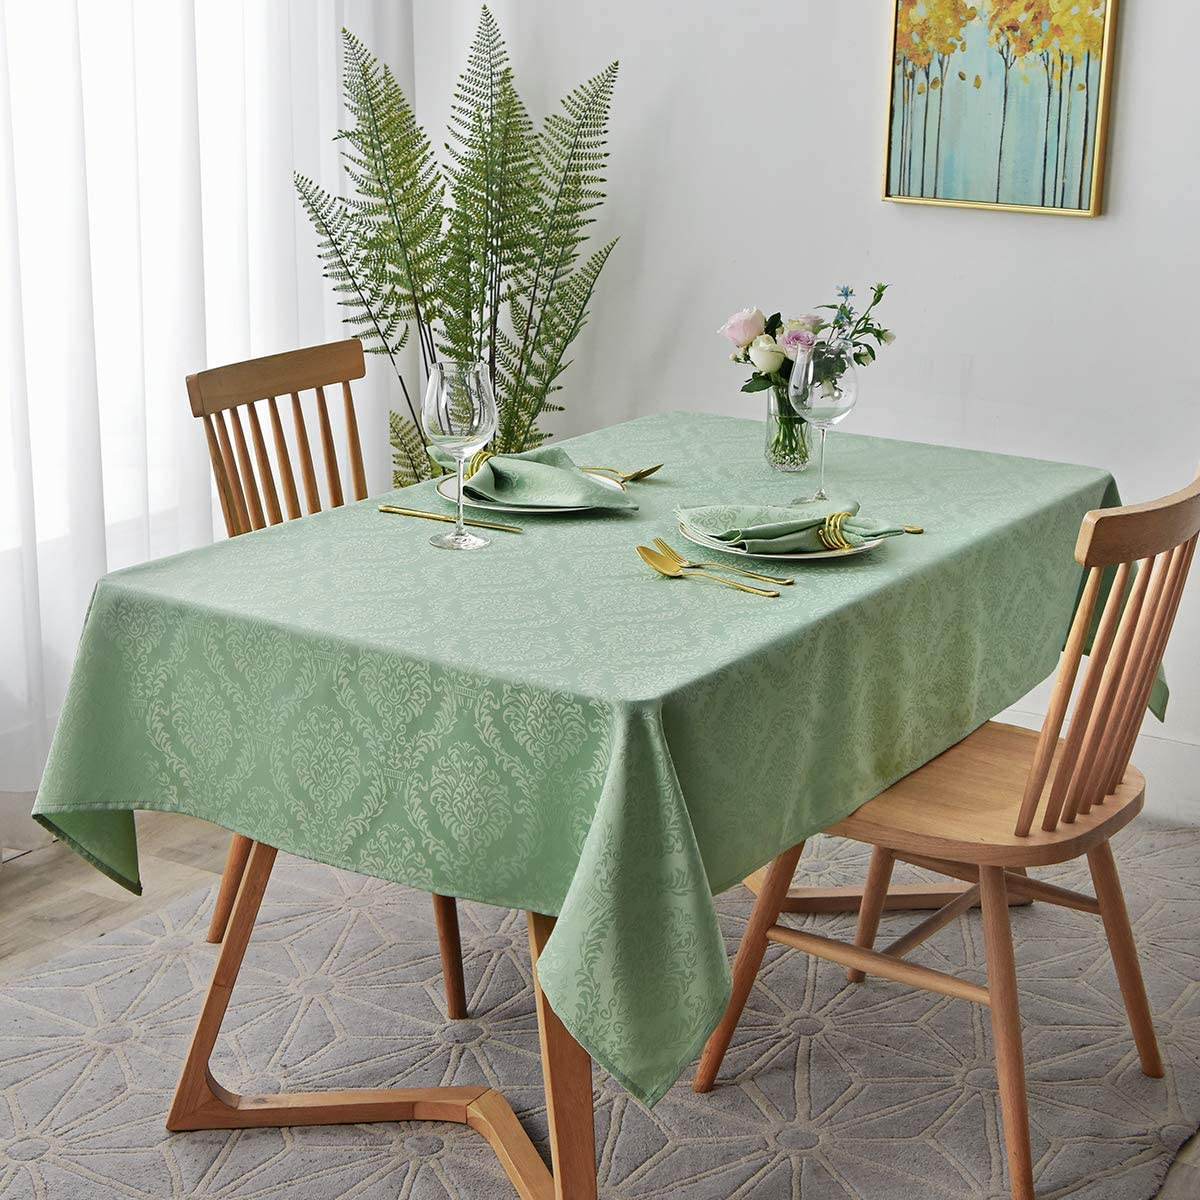 2021 autumn and winter new maxmill Jacquard Las Vegas Mall Tablecloth Damask Antiw Water Design Resistance